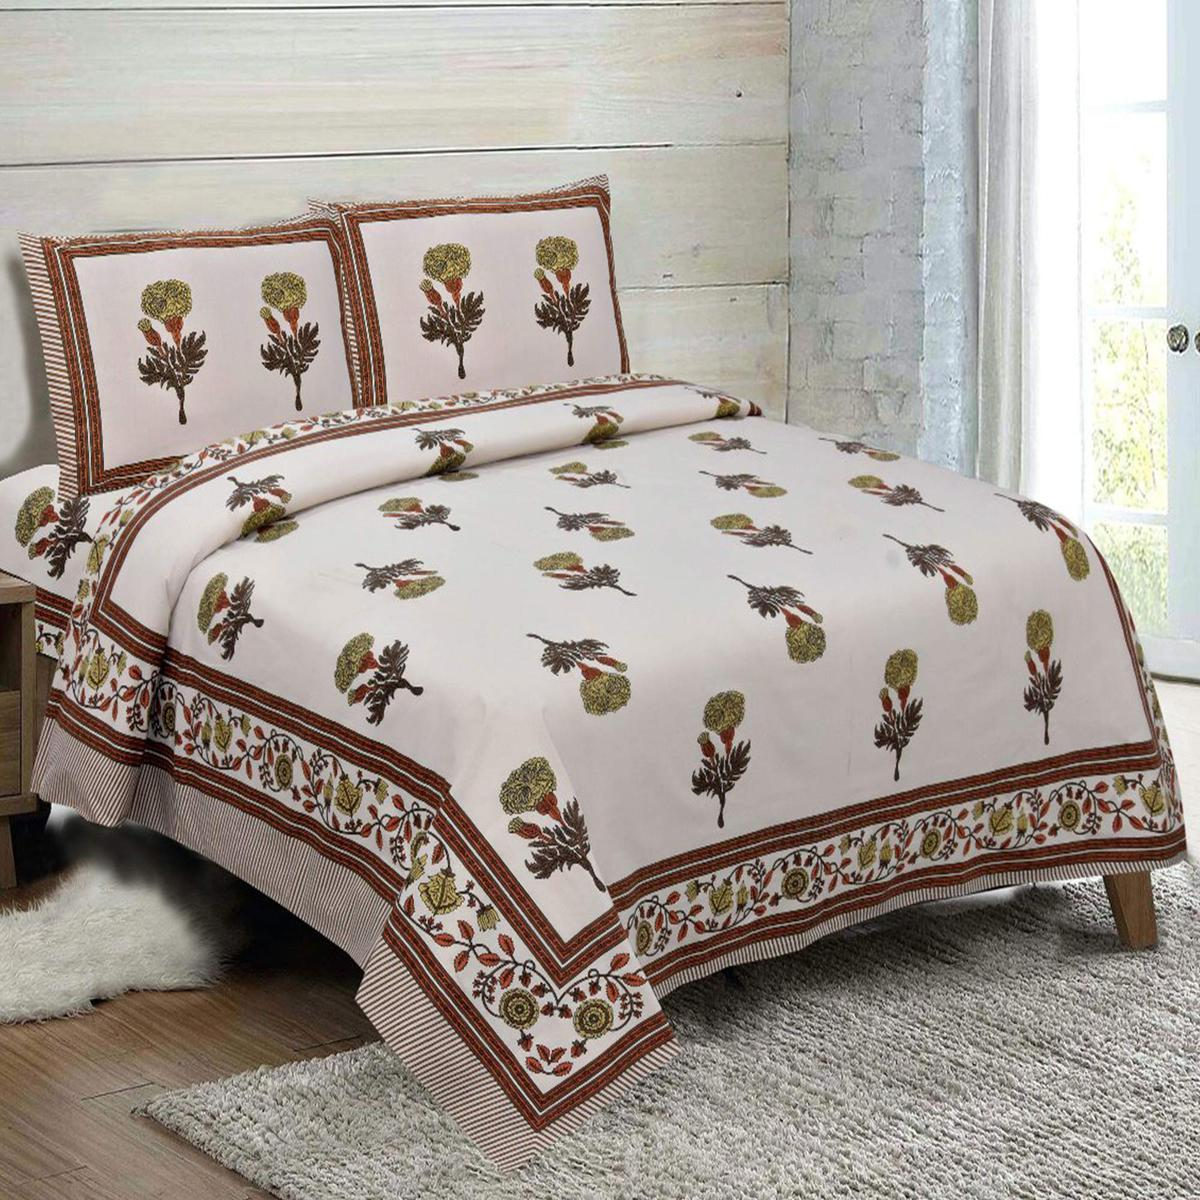 Diva Collection - Green Colored Jaipuri Print Cotton King Bedsheet with 2 Pillow Cover